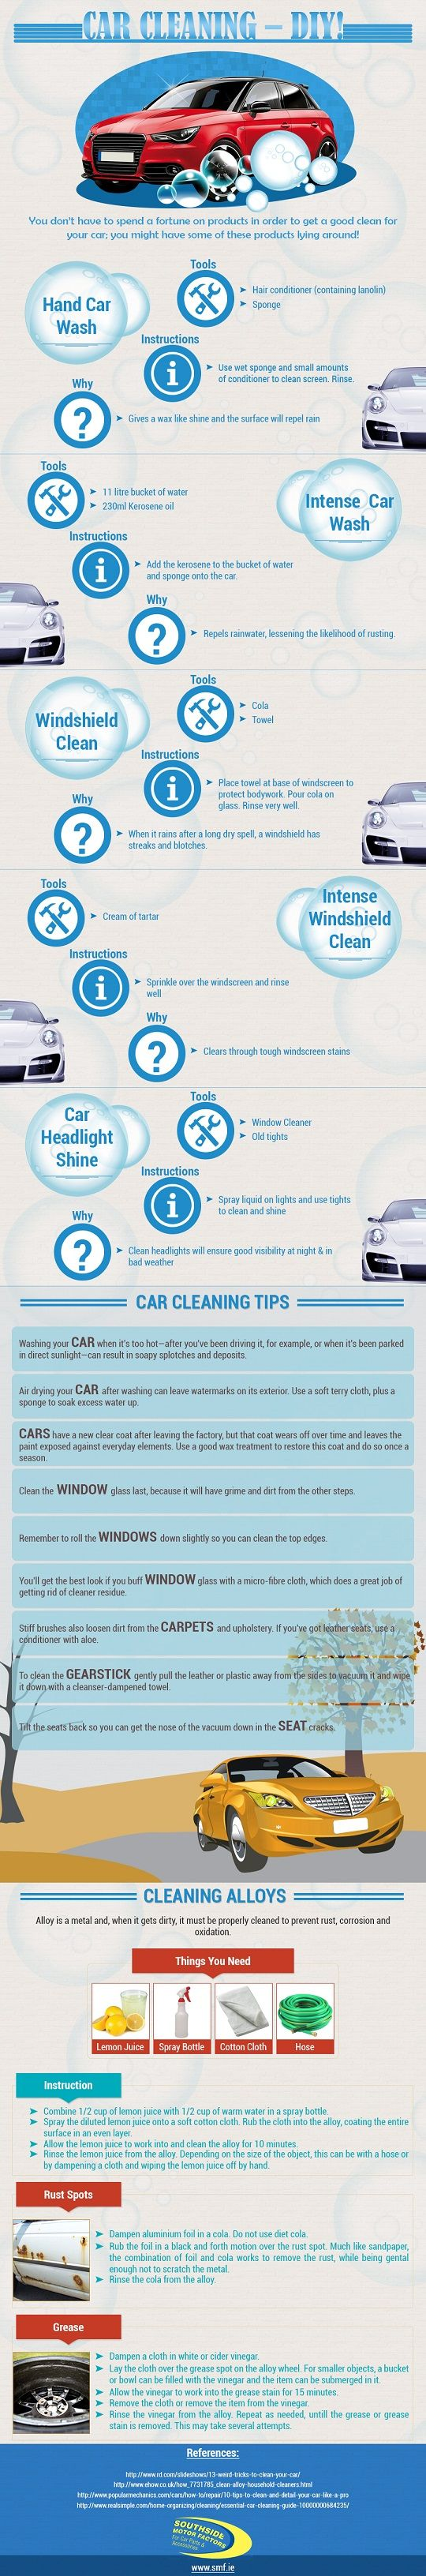 25 best car detailing images on pinterest car detailing car wash car cleaning diy solutioingenieria Image collections